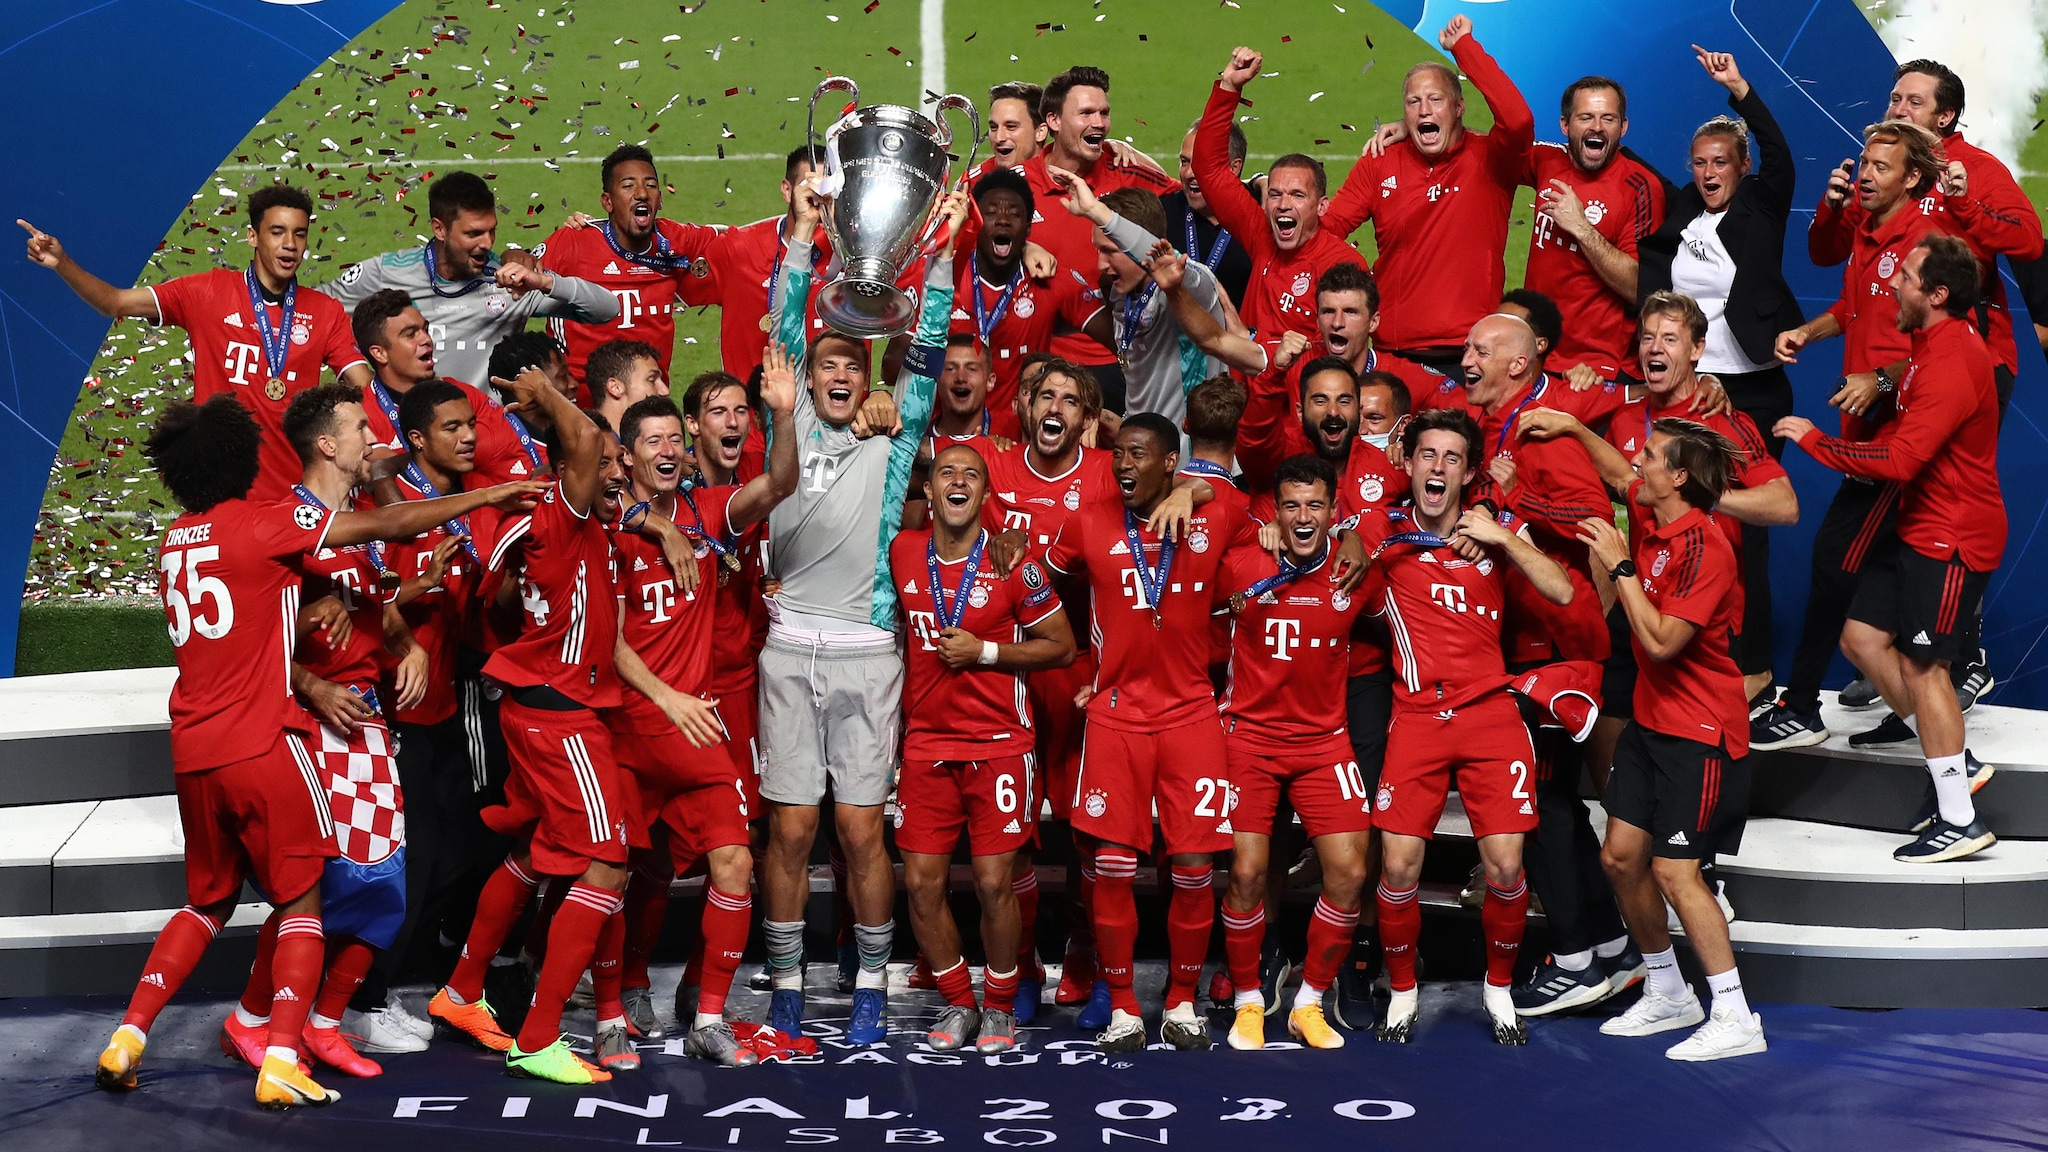 Who is at the top of the 2020 uefa rankings?